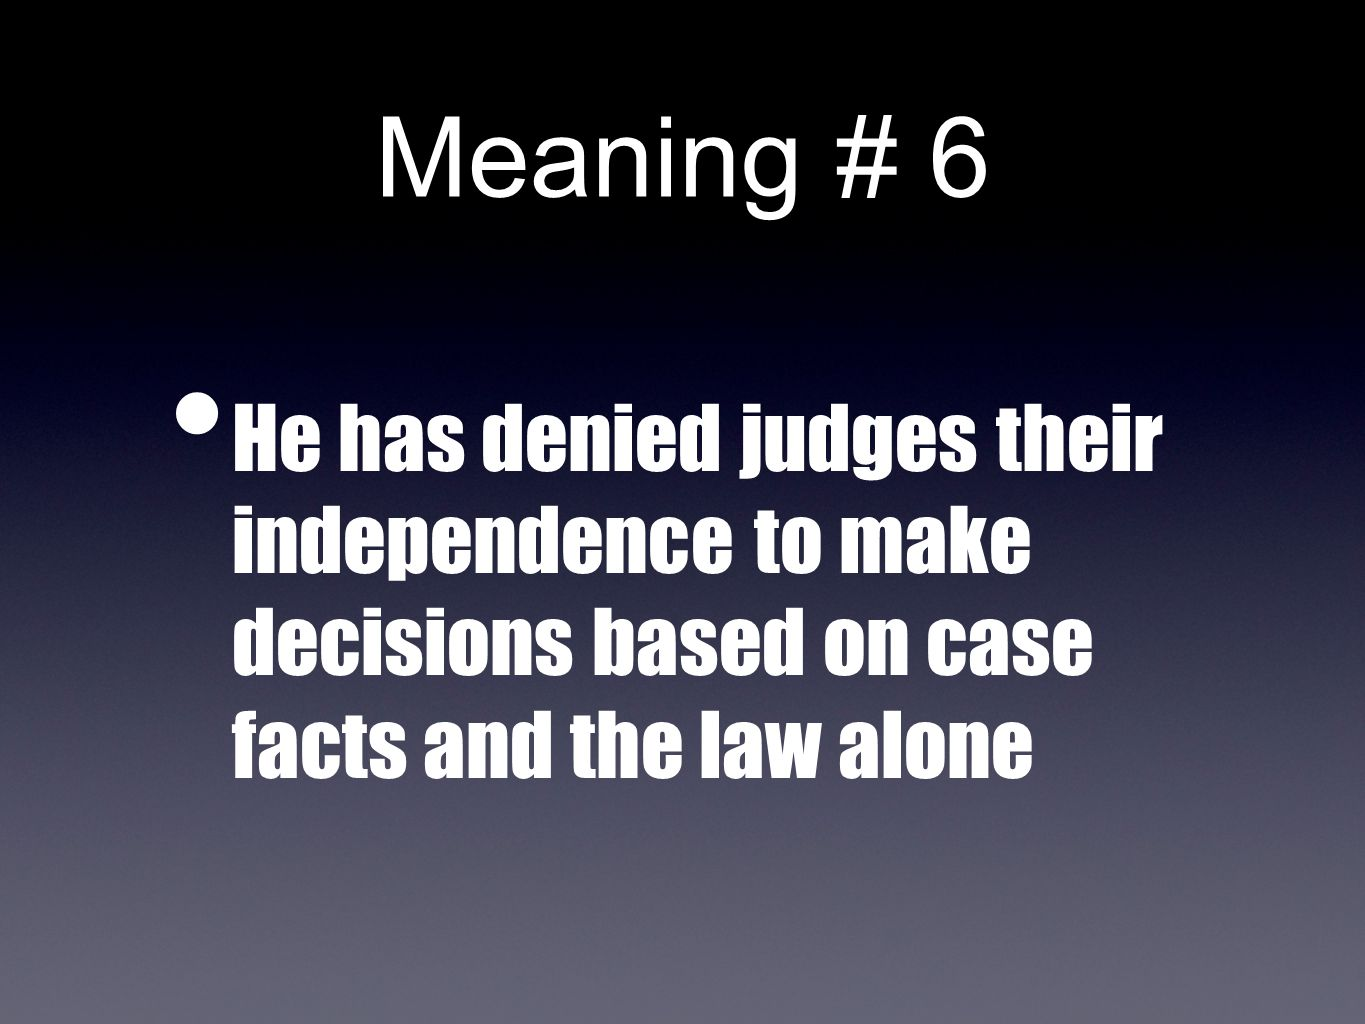 Meaning # 6 He has denied judges their independence to make decisions based on case facts and the law alone